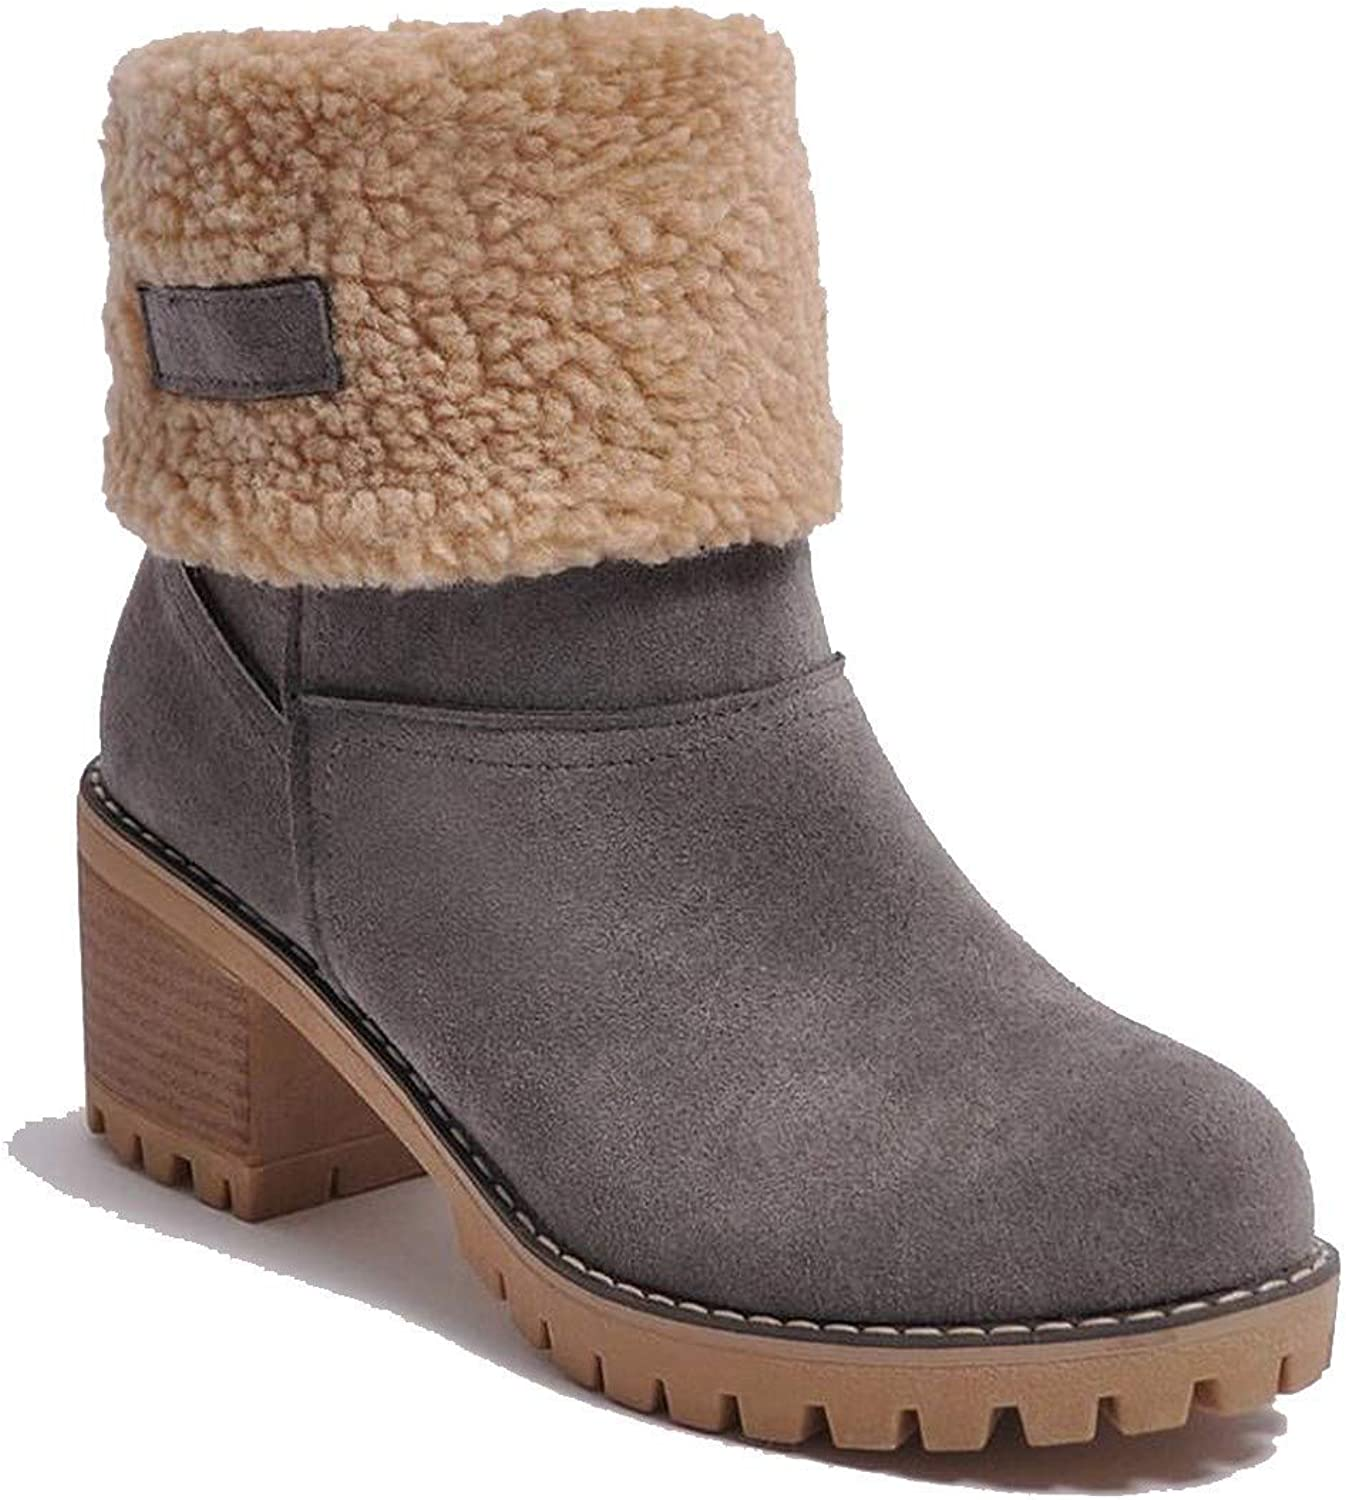 Women Boots Female Winter shoes Woman Fur Warm Snow High Heels Ankle Black Green Boots,